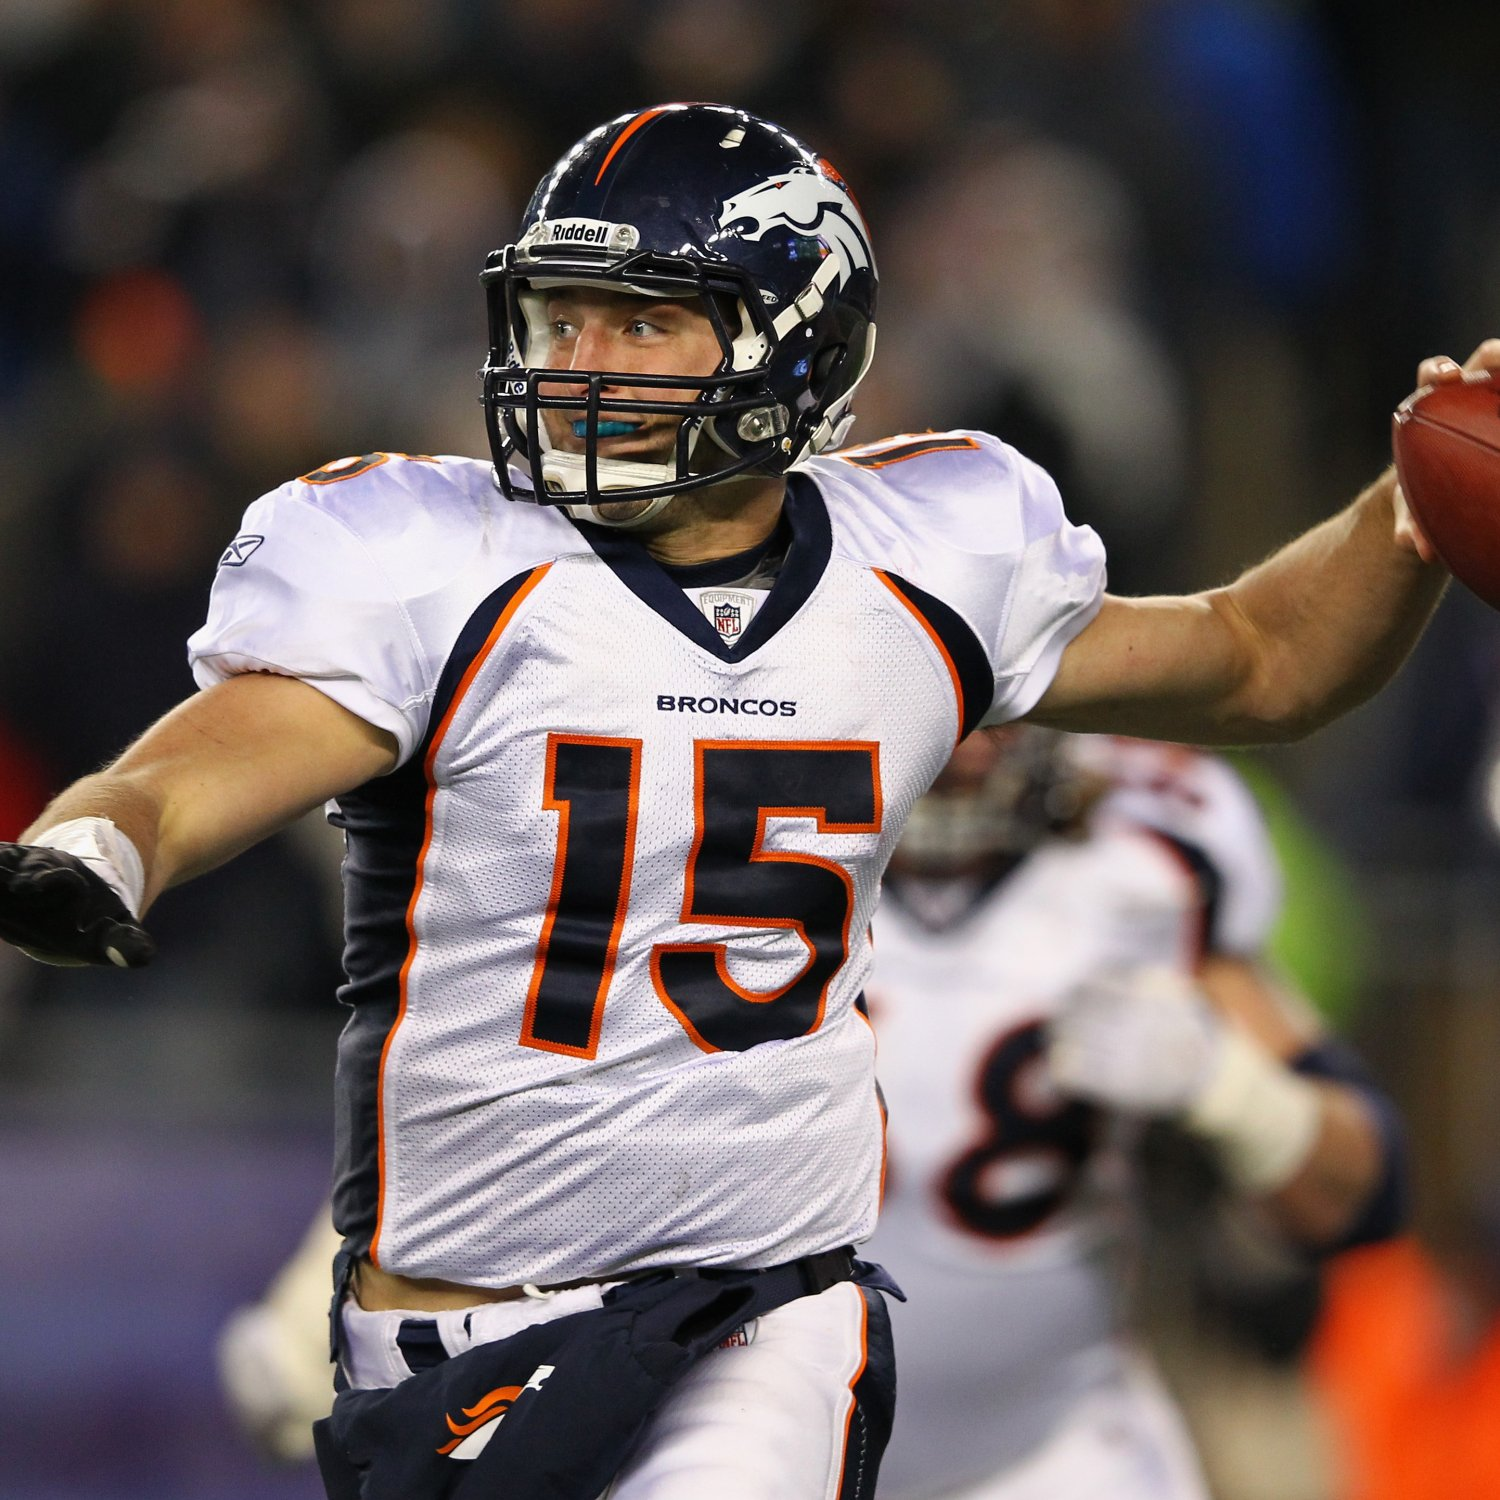 Tim Tebow Trade Rumors: Could Broncos QB Be On The Way To